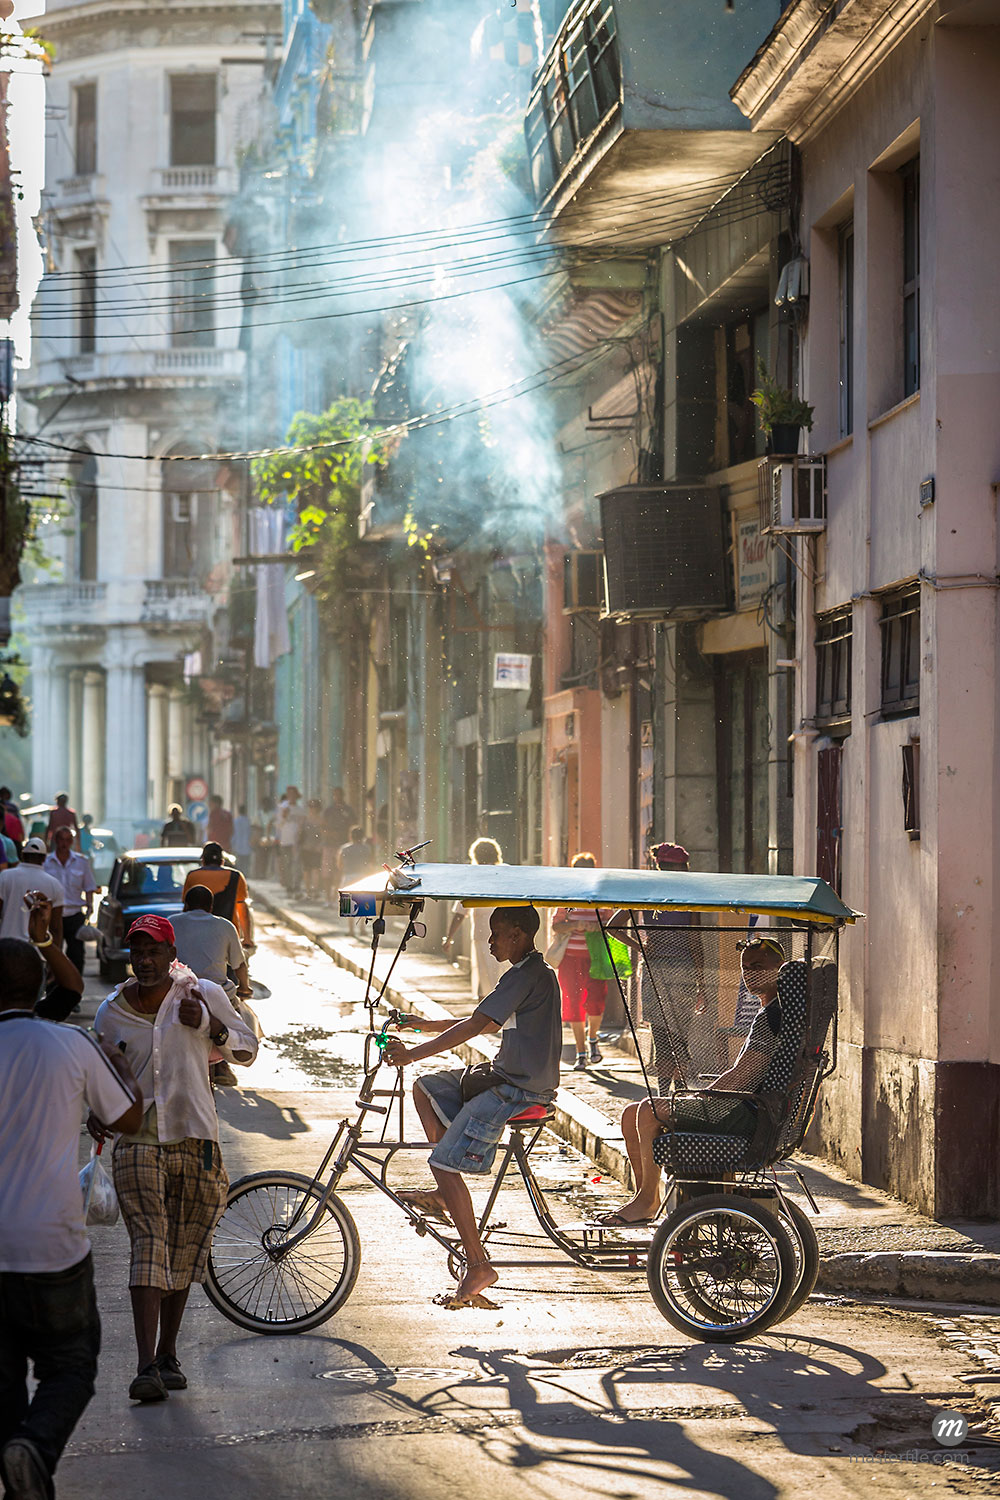 Cycle Rickshaw with Passengers on Busy City Street, Havana, Cuba  ©  R. Ian Lloyd / Masterfile